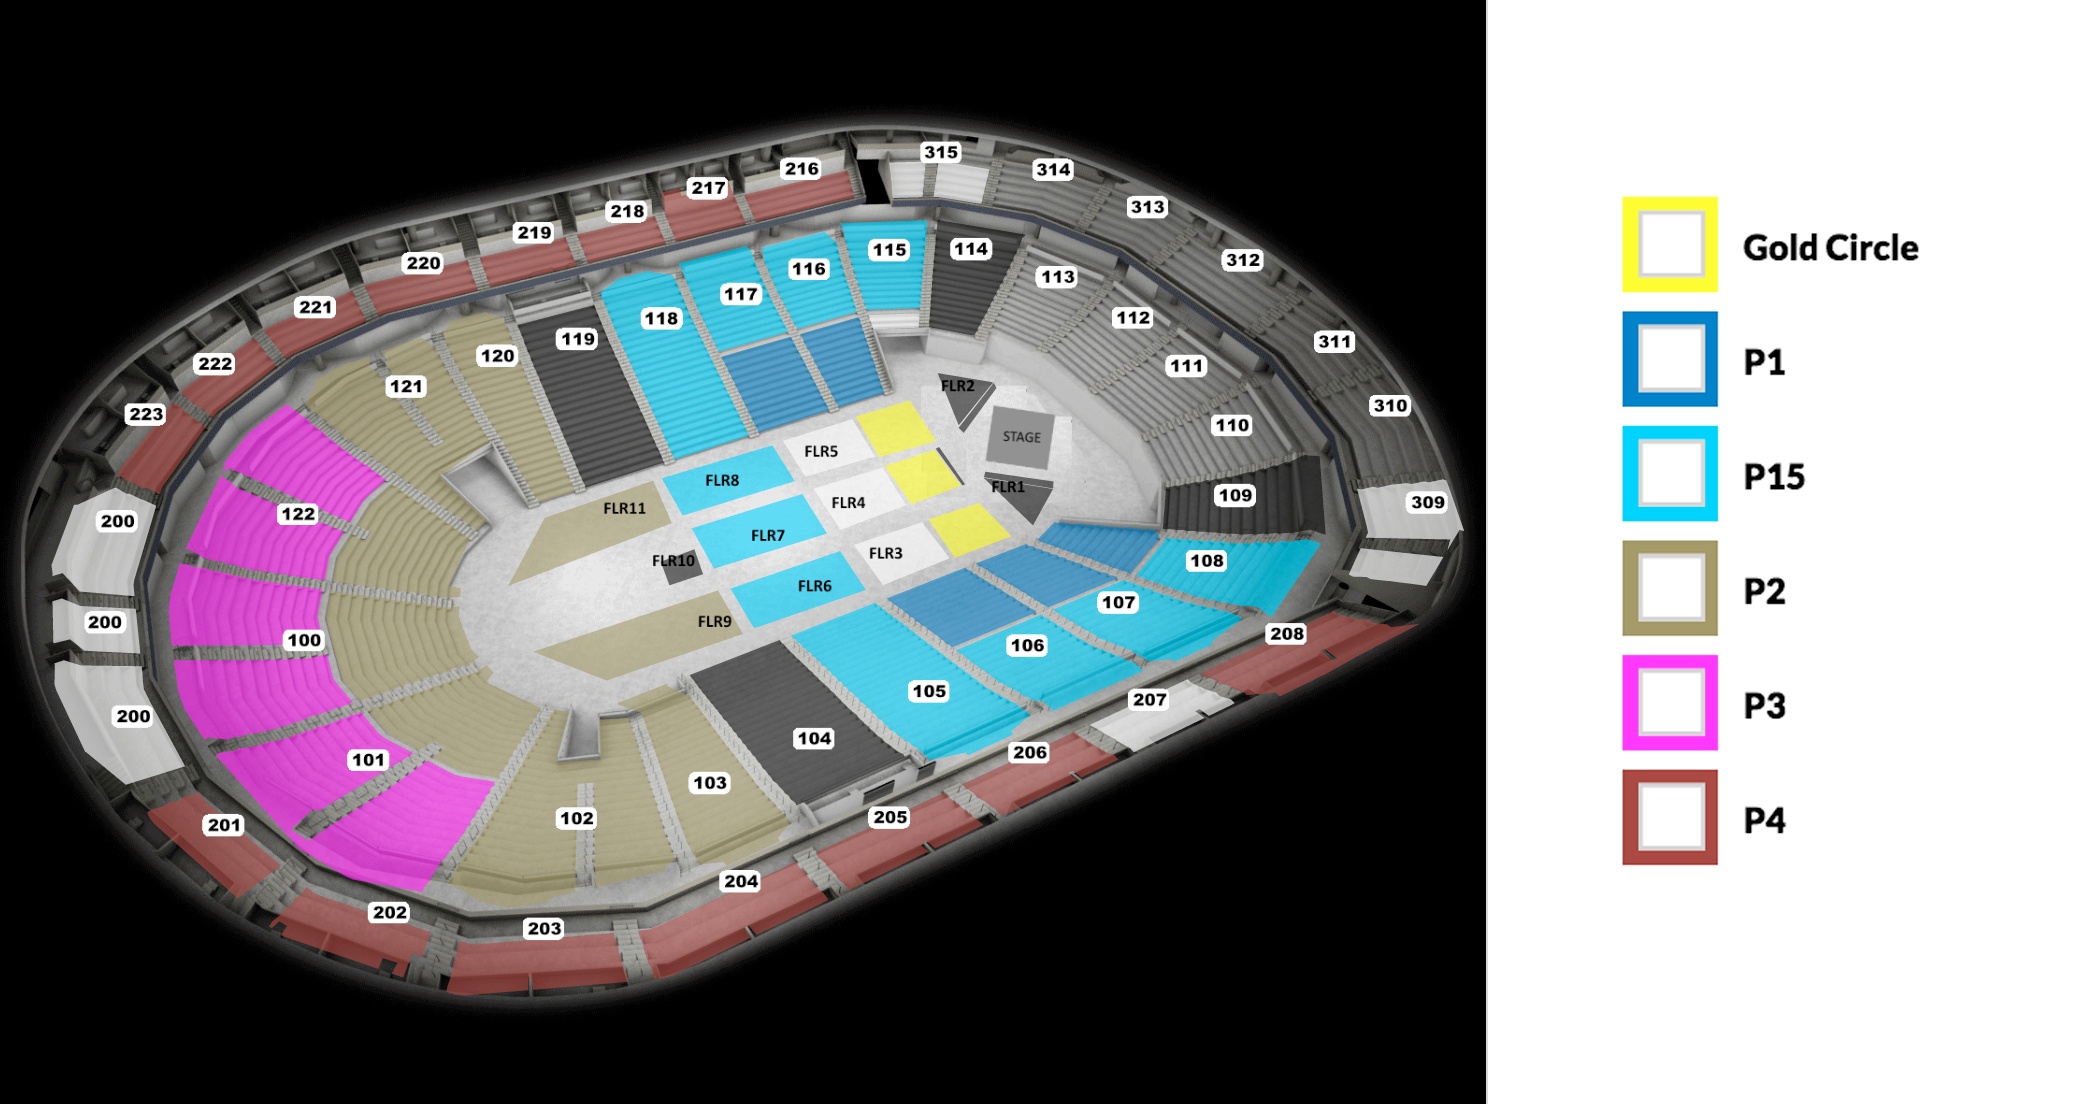 Lionel richie seating chart also infinite energy center arena atlanta tickets schedule rh goldstar